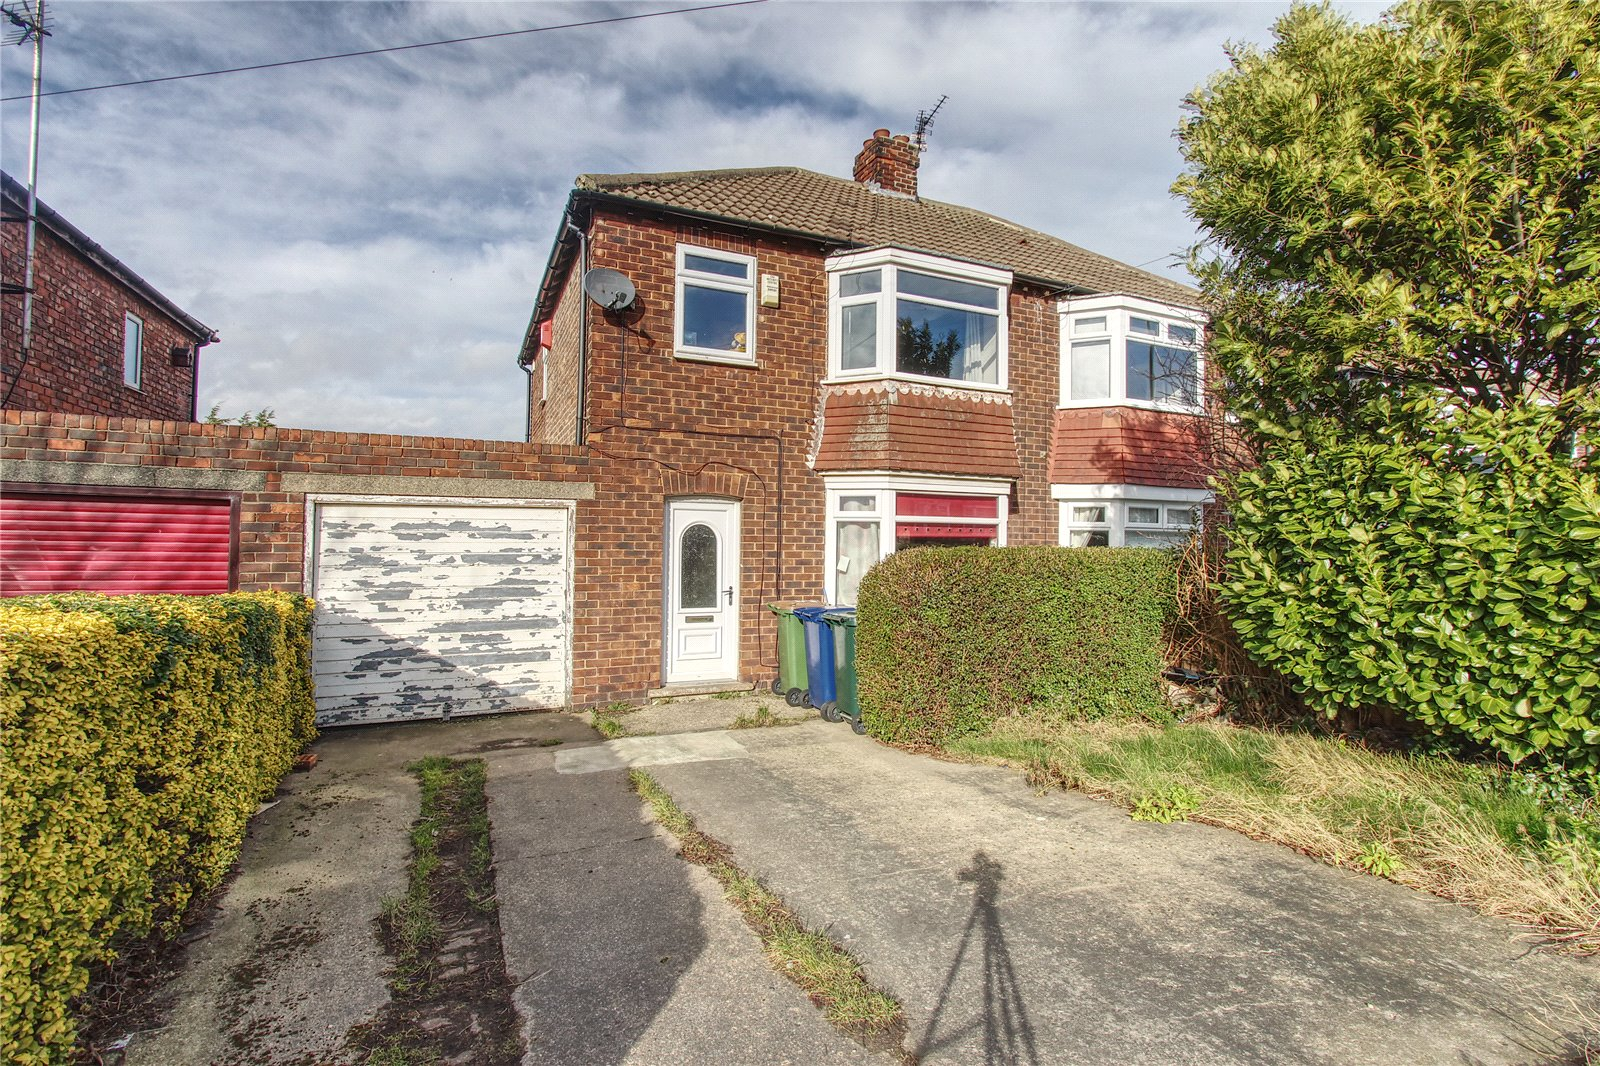 3 bed house for sale in Broadway East, Redcar 1